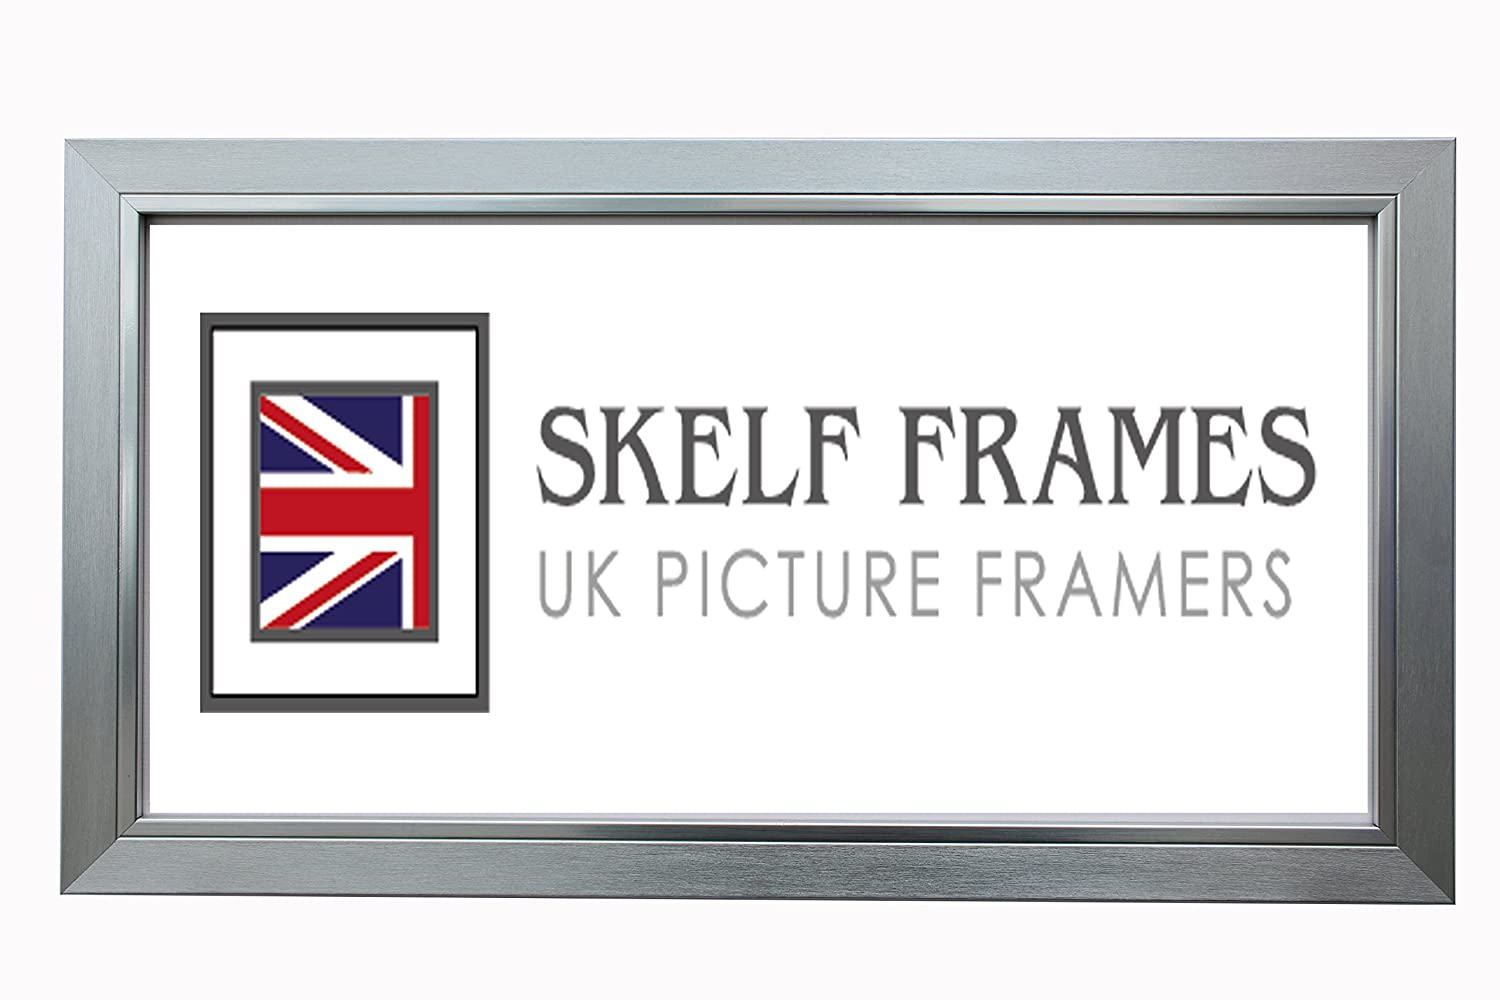 18' x 6' PANORAMIC PICTURE PHOTO POSTER FRAME WITH GLASS (Pewter) Skelf Frames Ltd